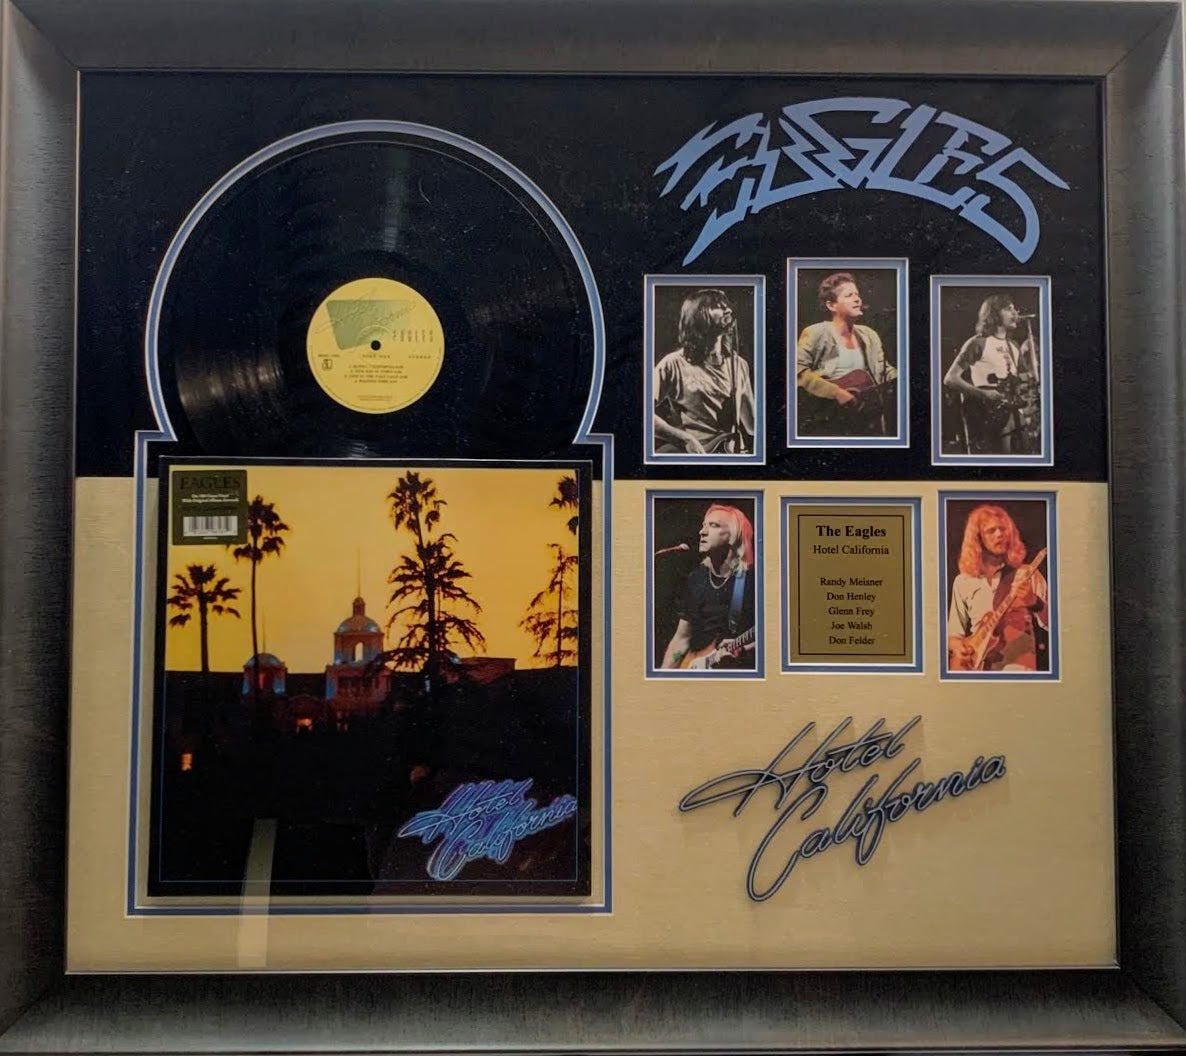 The Eagles Hotel California Record Album Framed with Photos of Band Members